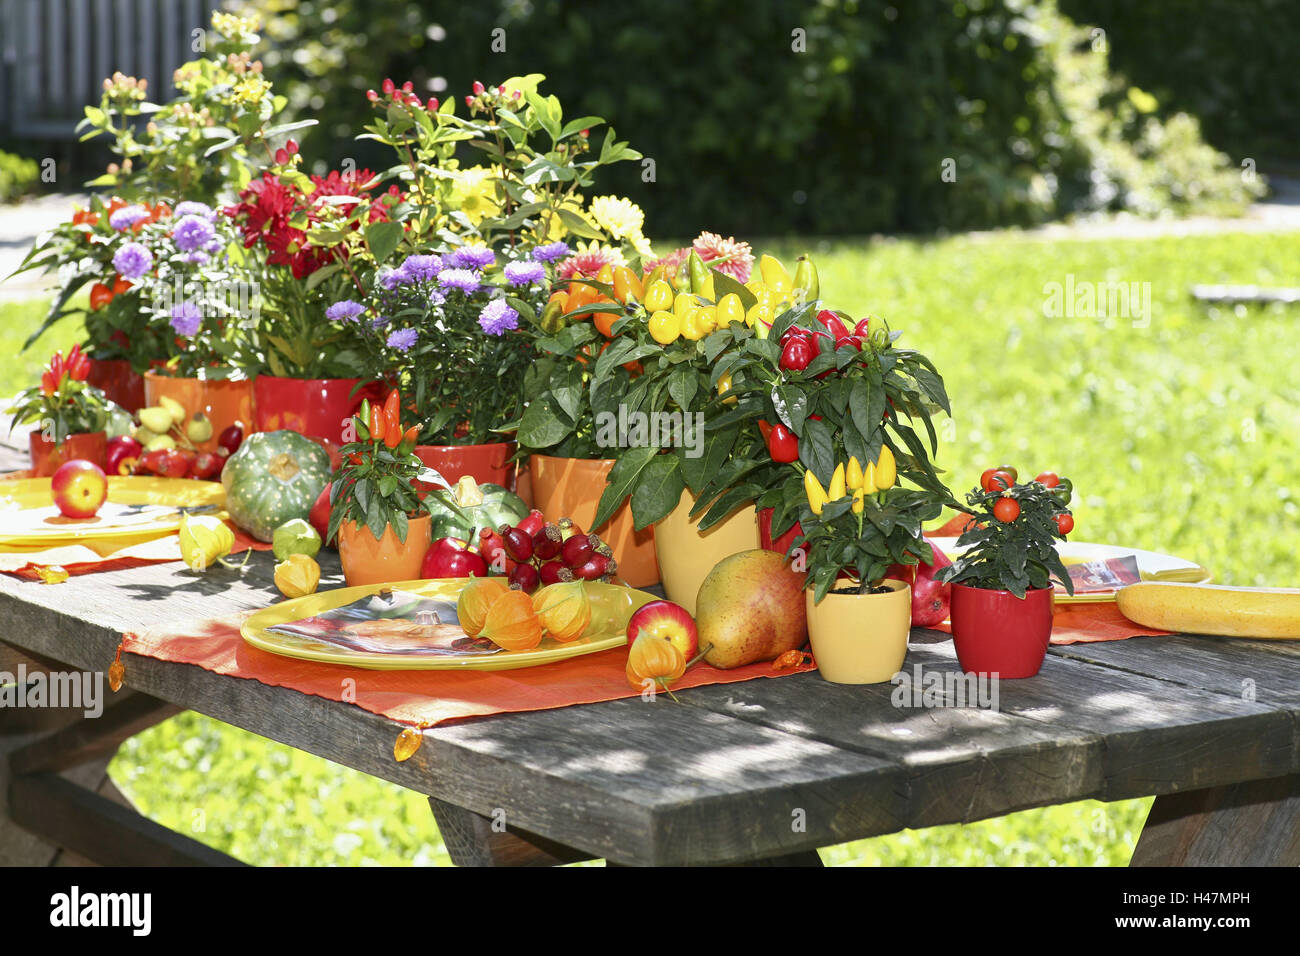 Garden table, decorated, autumnally, covered, brightly, fruits, flowers, vegetables, garden, table, late summer, - Stock Image